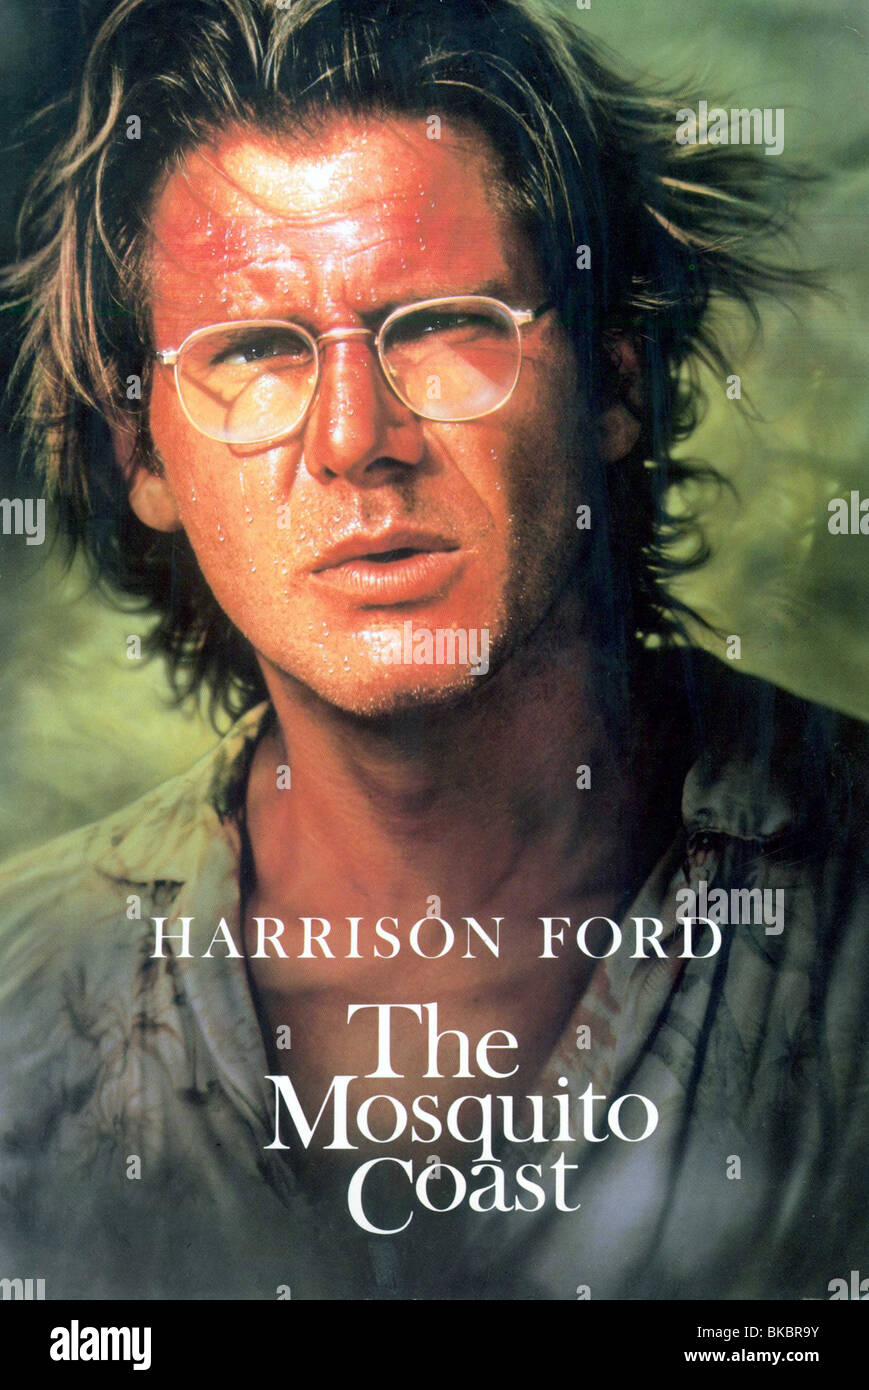 Must watch again soon innocent harrison ford movies stonevoices co